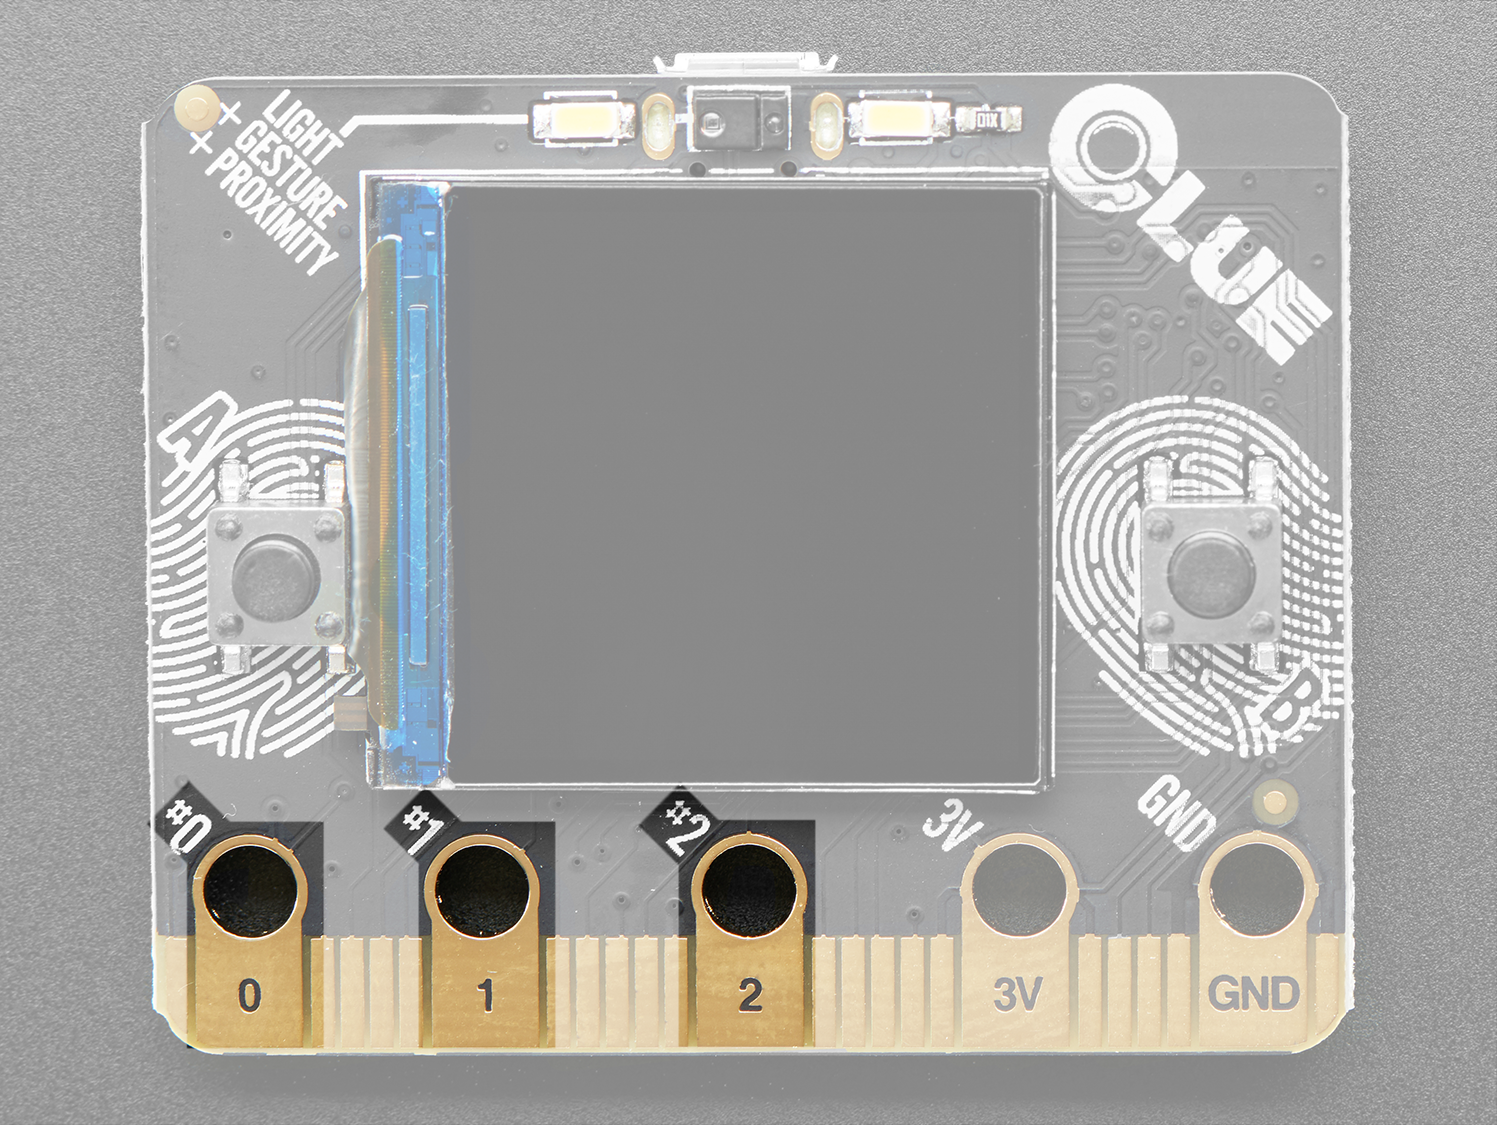 adafruit_products_Clue_top_pinouts_GPIO_0_1_2.png